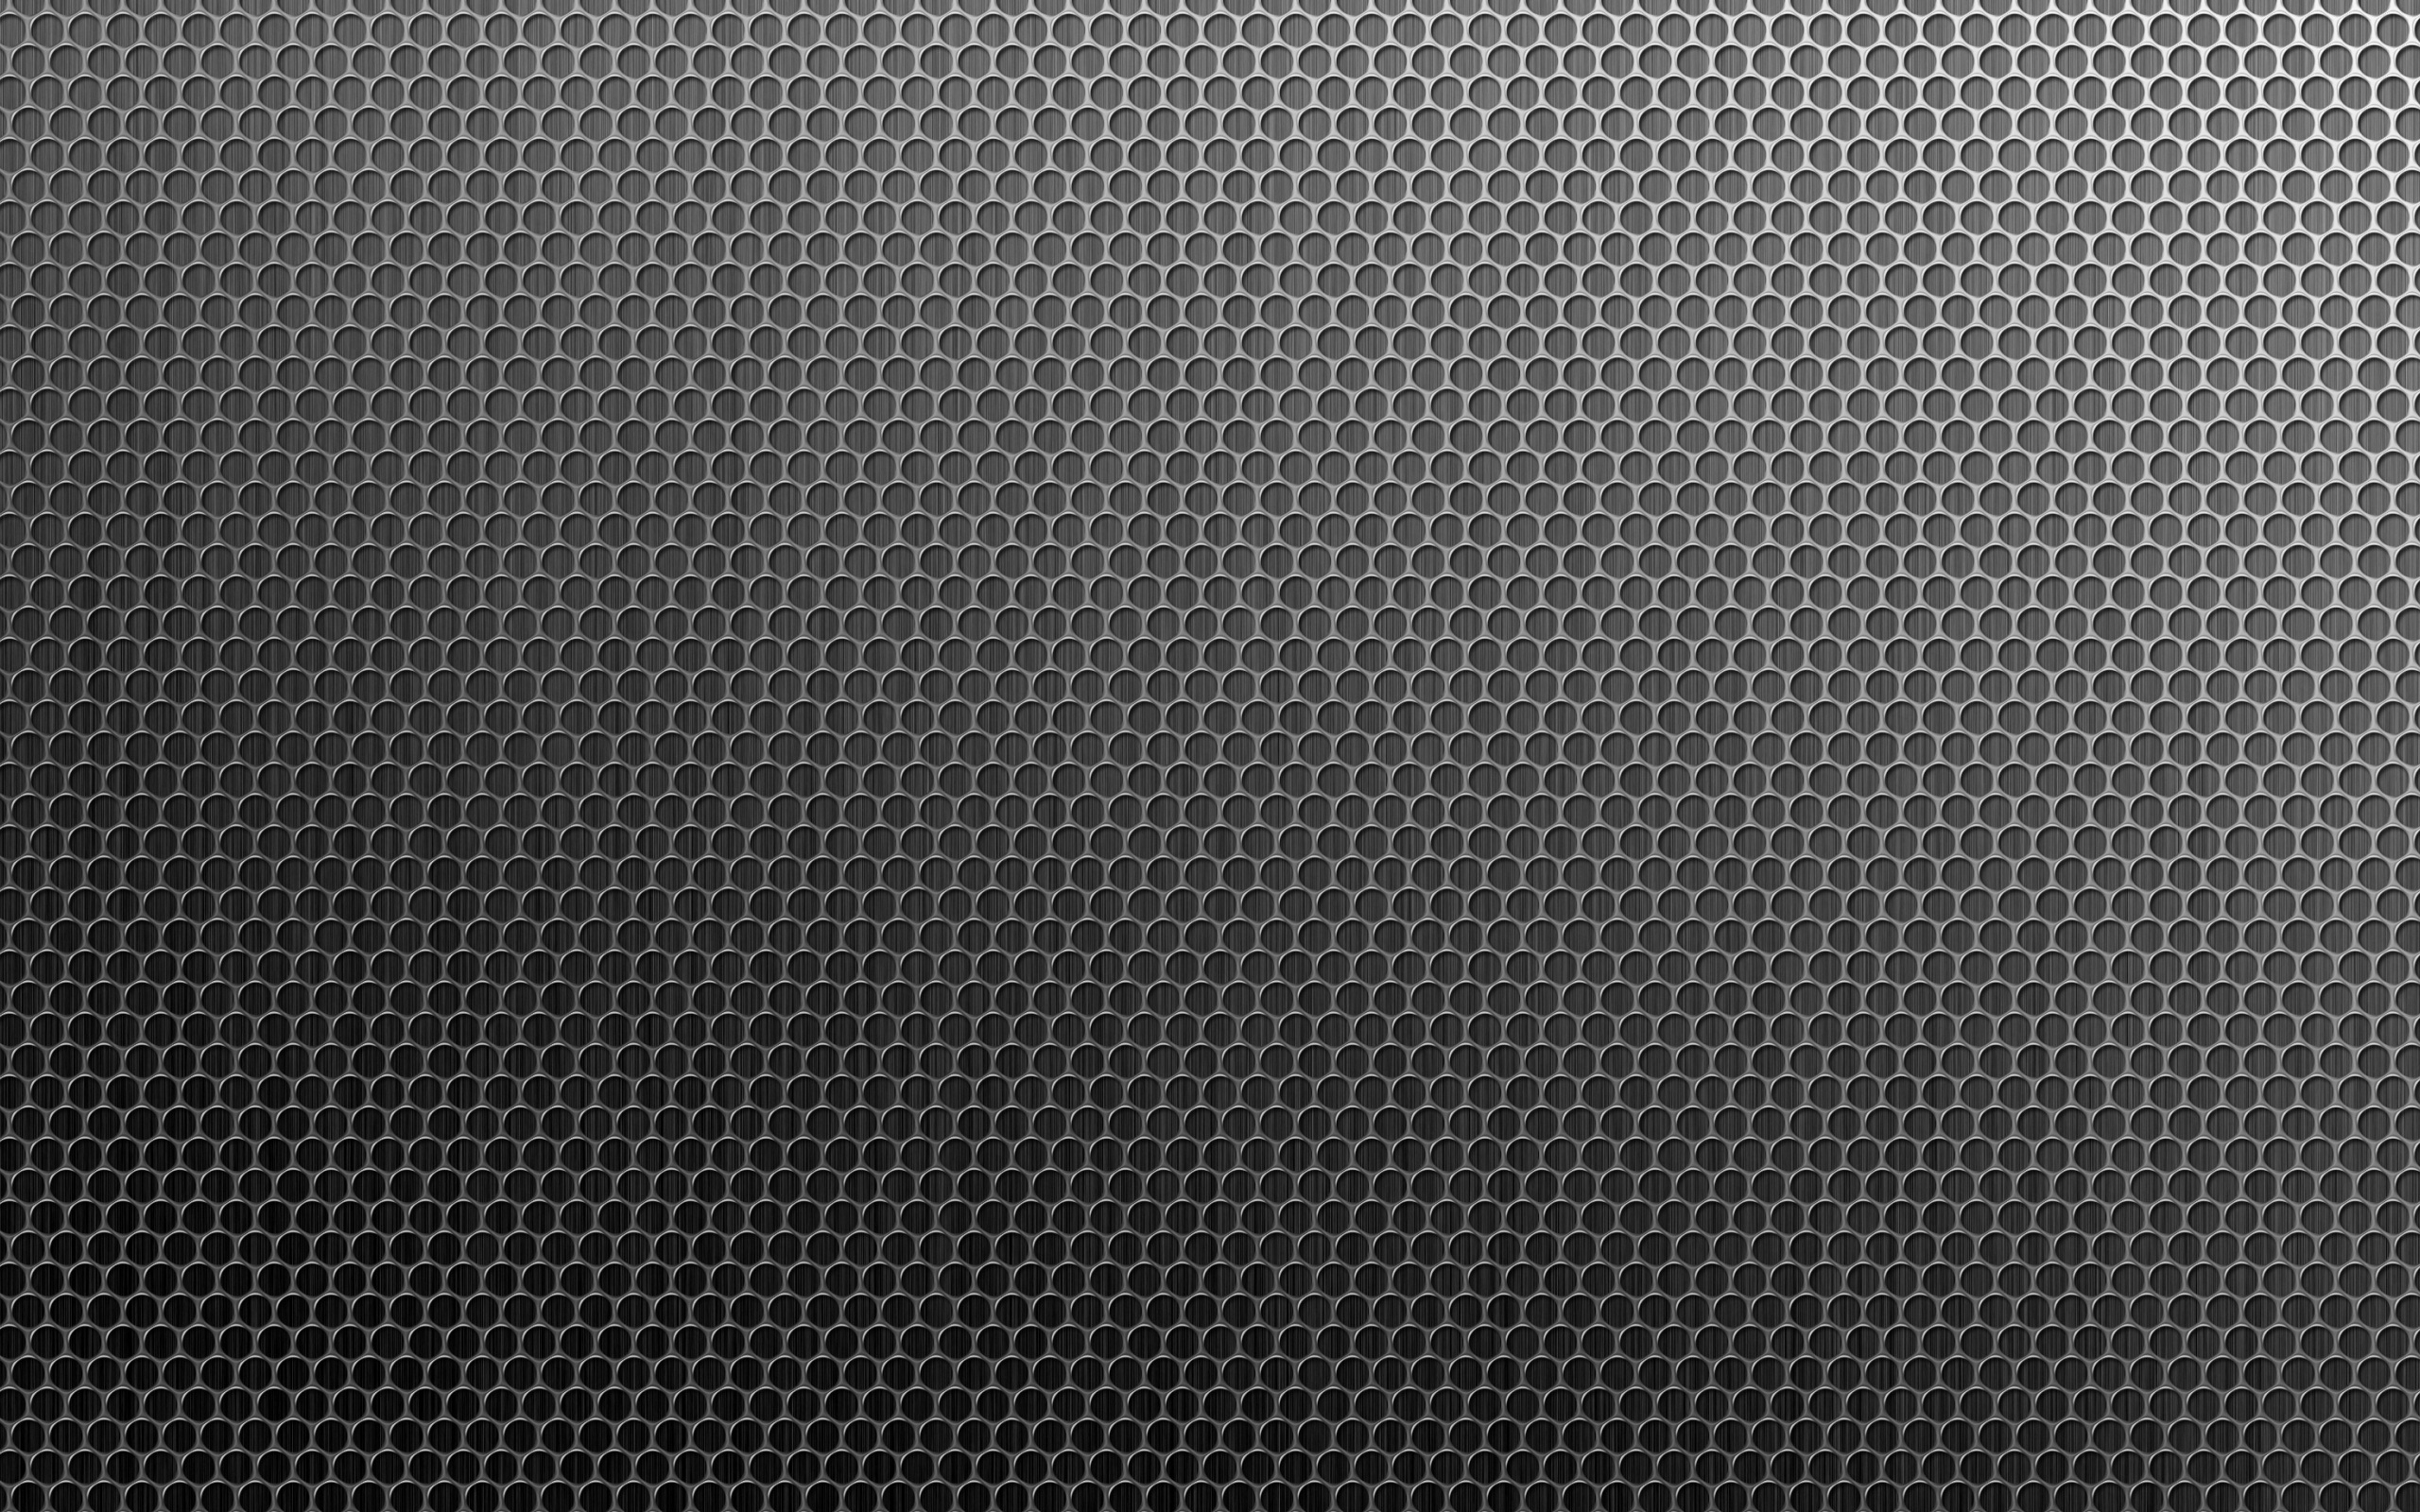 texture, metal grid, download photo, metal